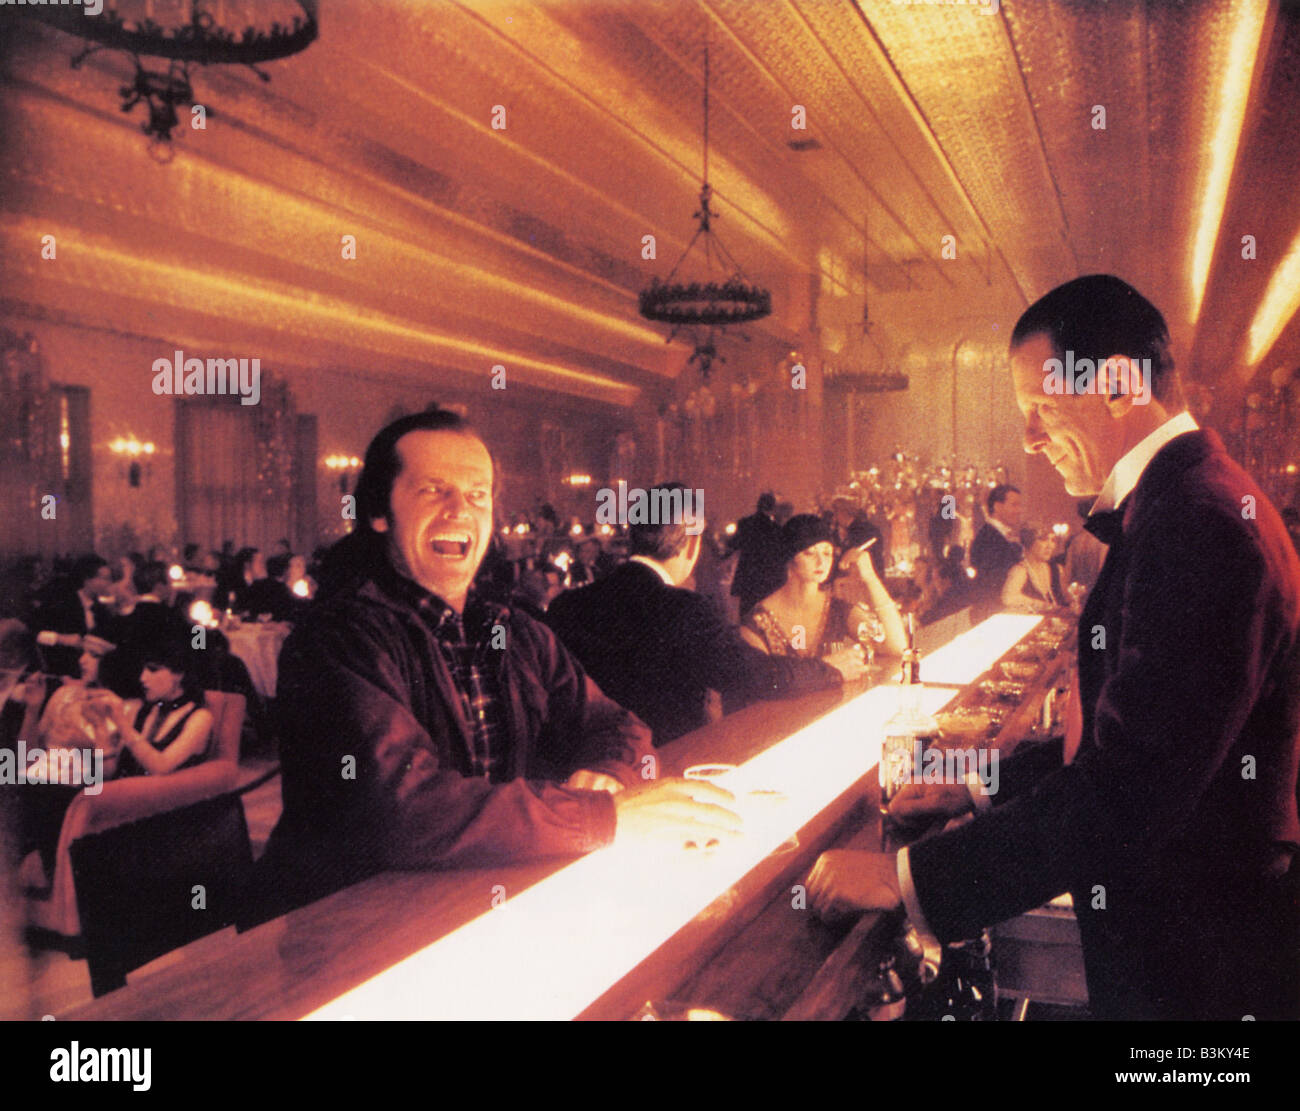 THE SHINING 1980 Warner film with Jack Nicholson at left - Stock Image